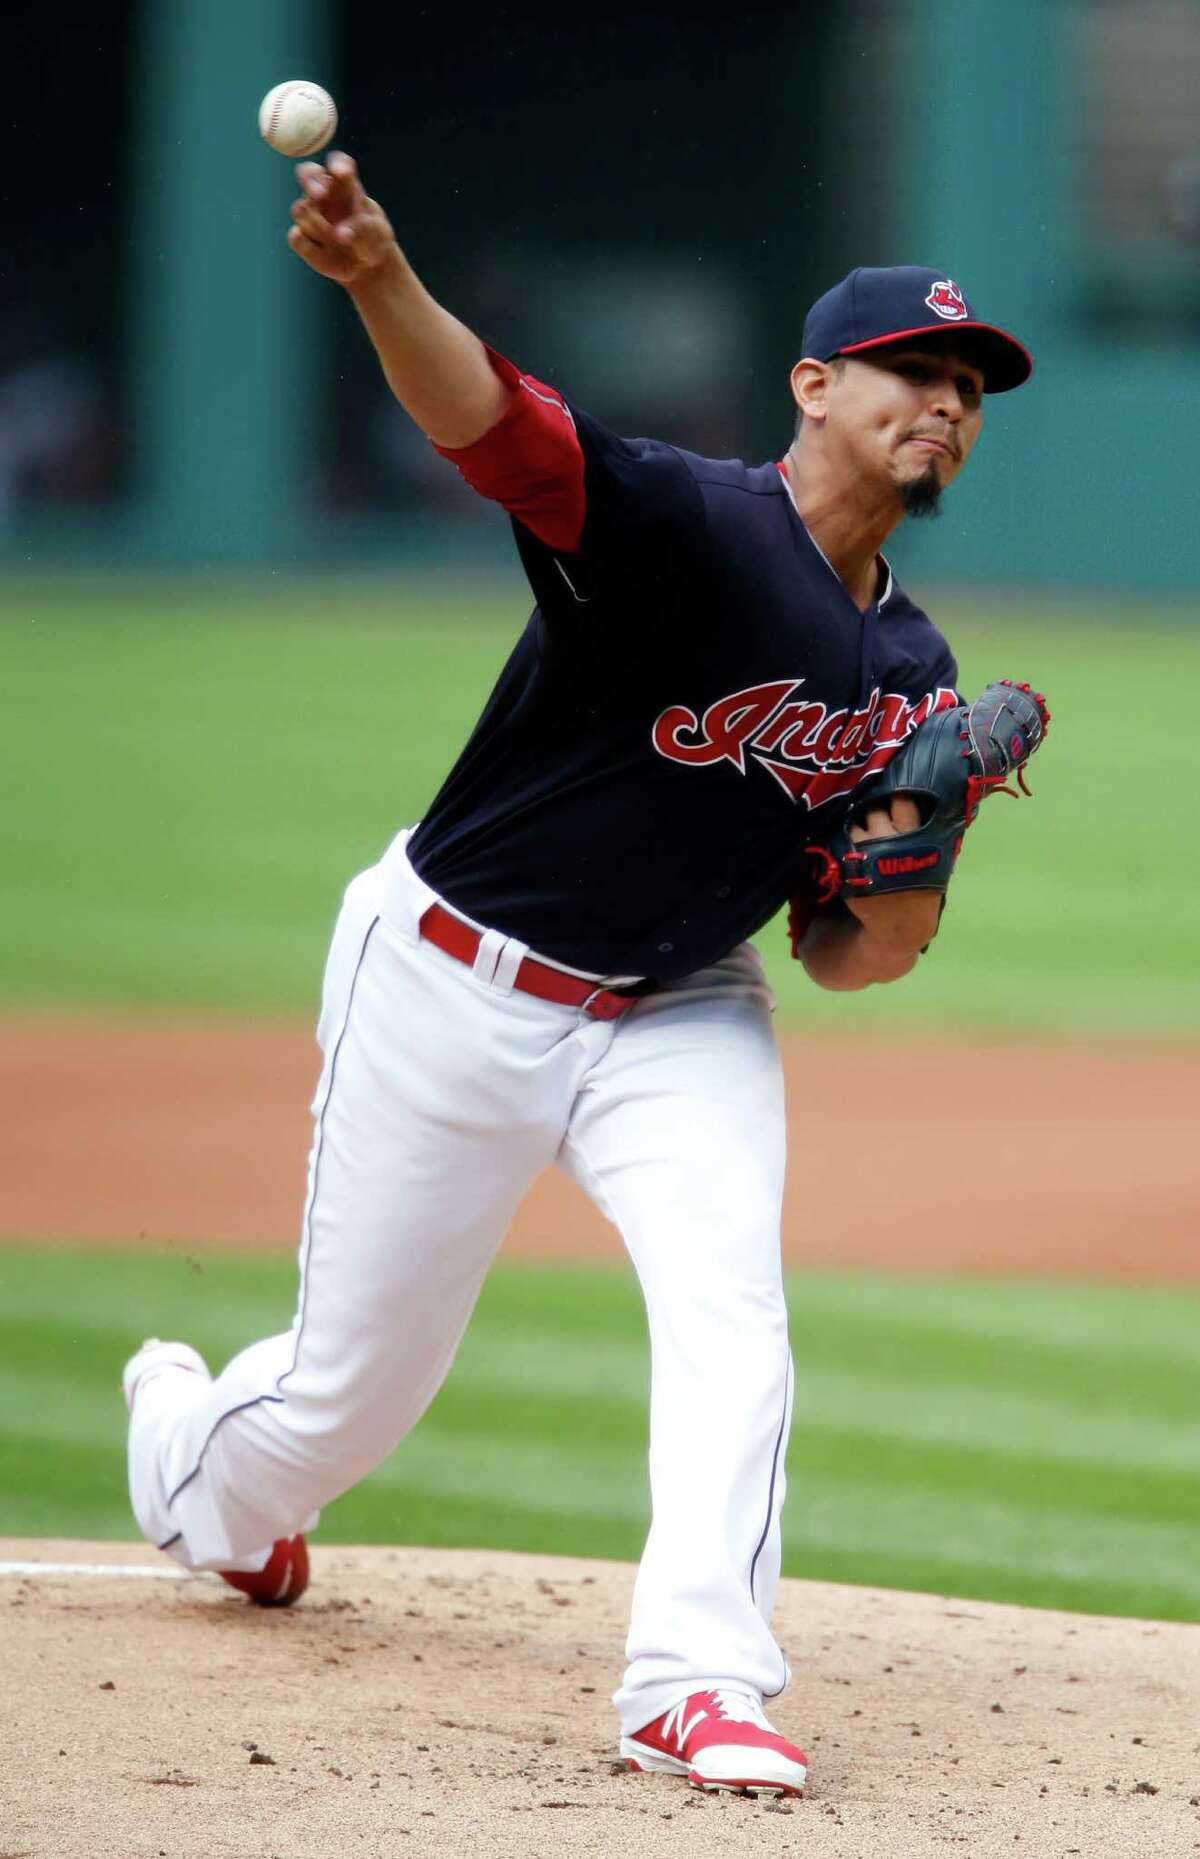 Cleveland Indians starting pitcher Carlos Carrasco delivers against the Detroit Tigers during the first inning of a baseball game Saturday, Sept. 17, 2016, in Cleveland. (AP Photo/Ron Schwane) ORG XMIT: OHRS101